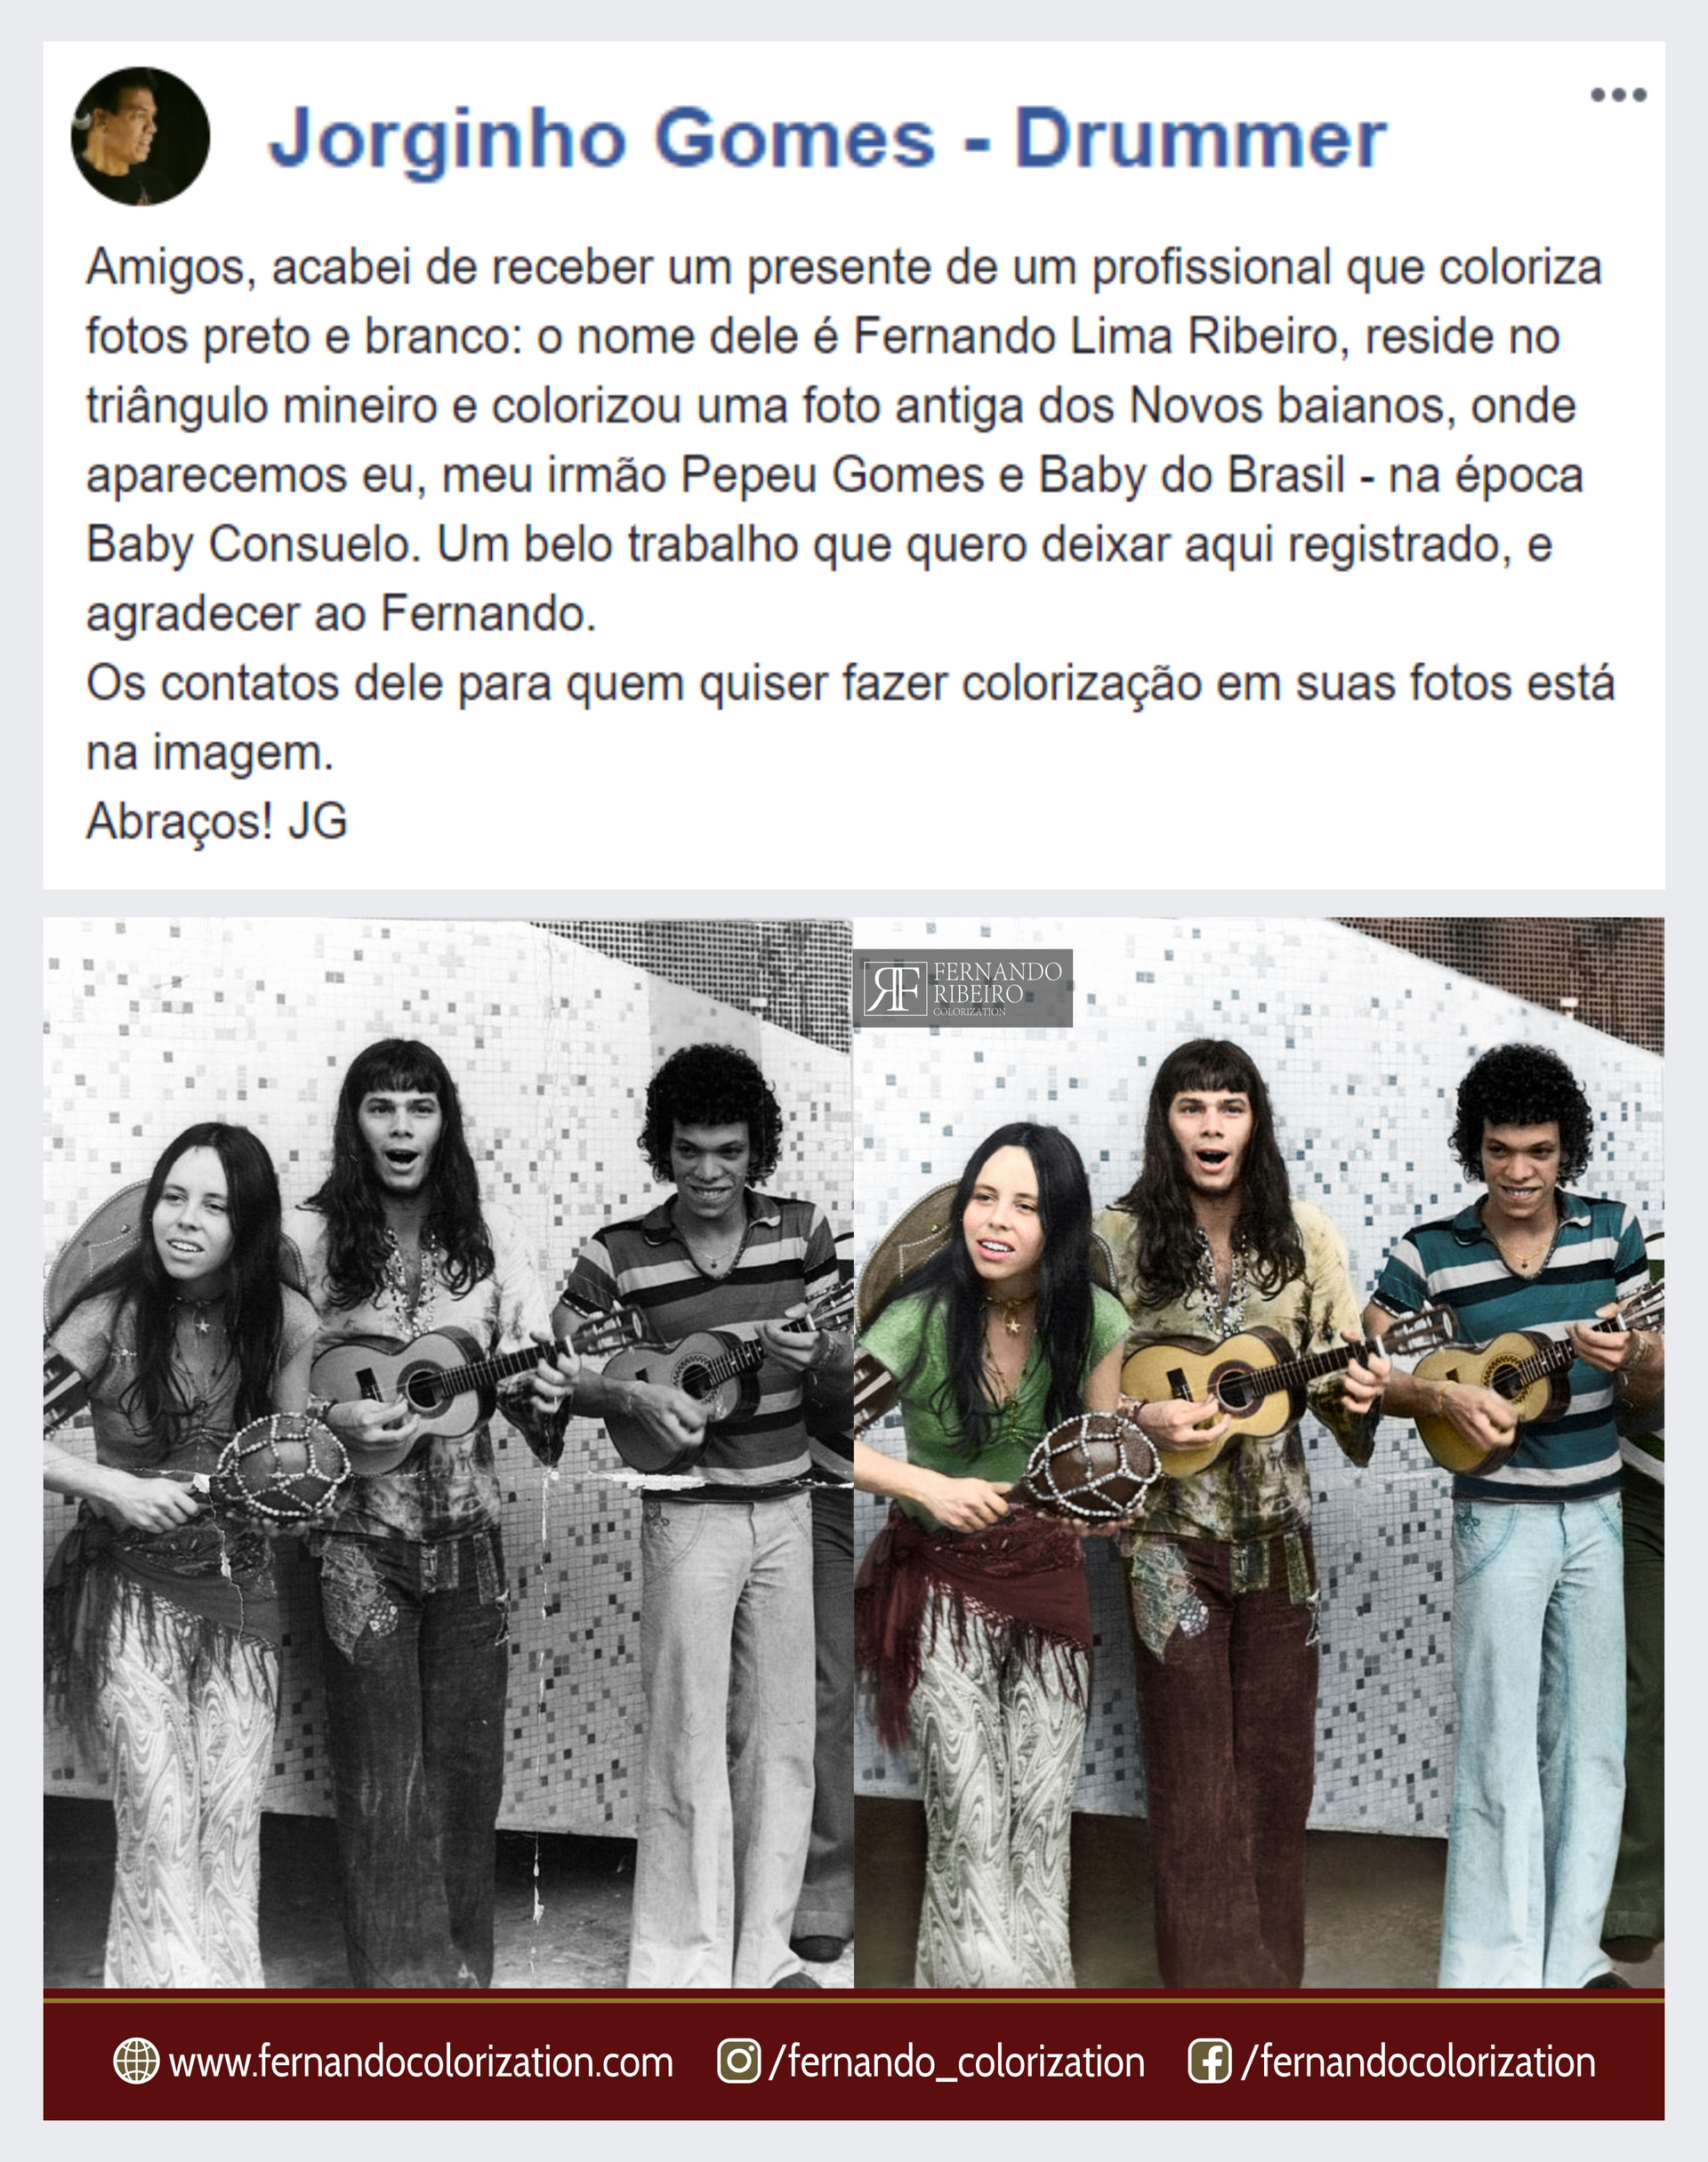 👏👏👏😁 Very cool!!! I am very happy with the compliment of the drummer Jorginho Gomes! I recently colored a photography of their musical group.